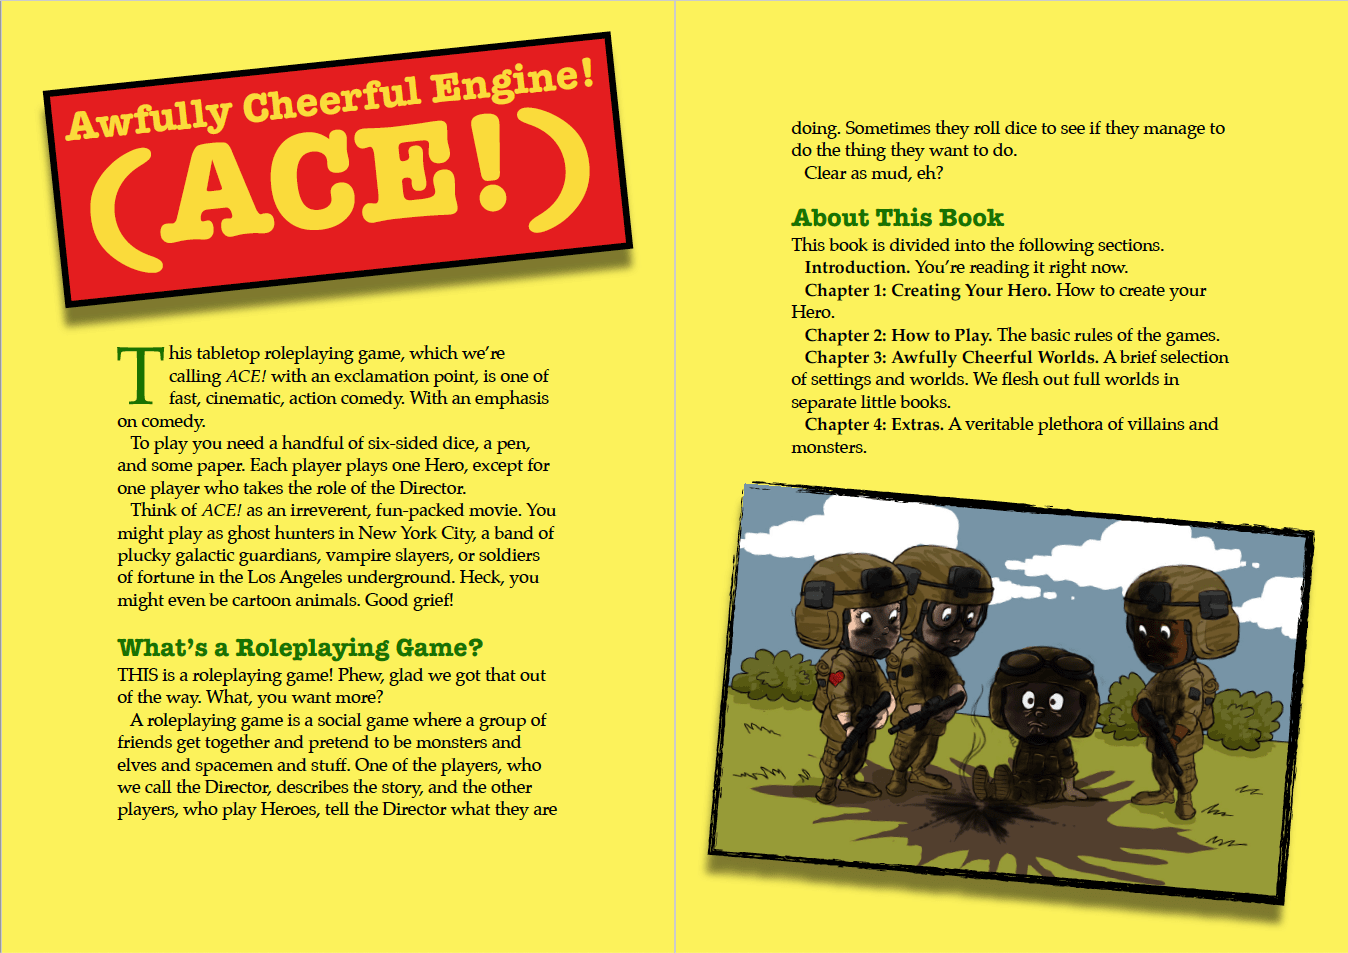 Awfully Cheerful Engine! (ACE)